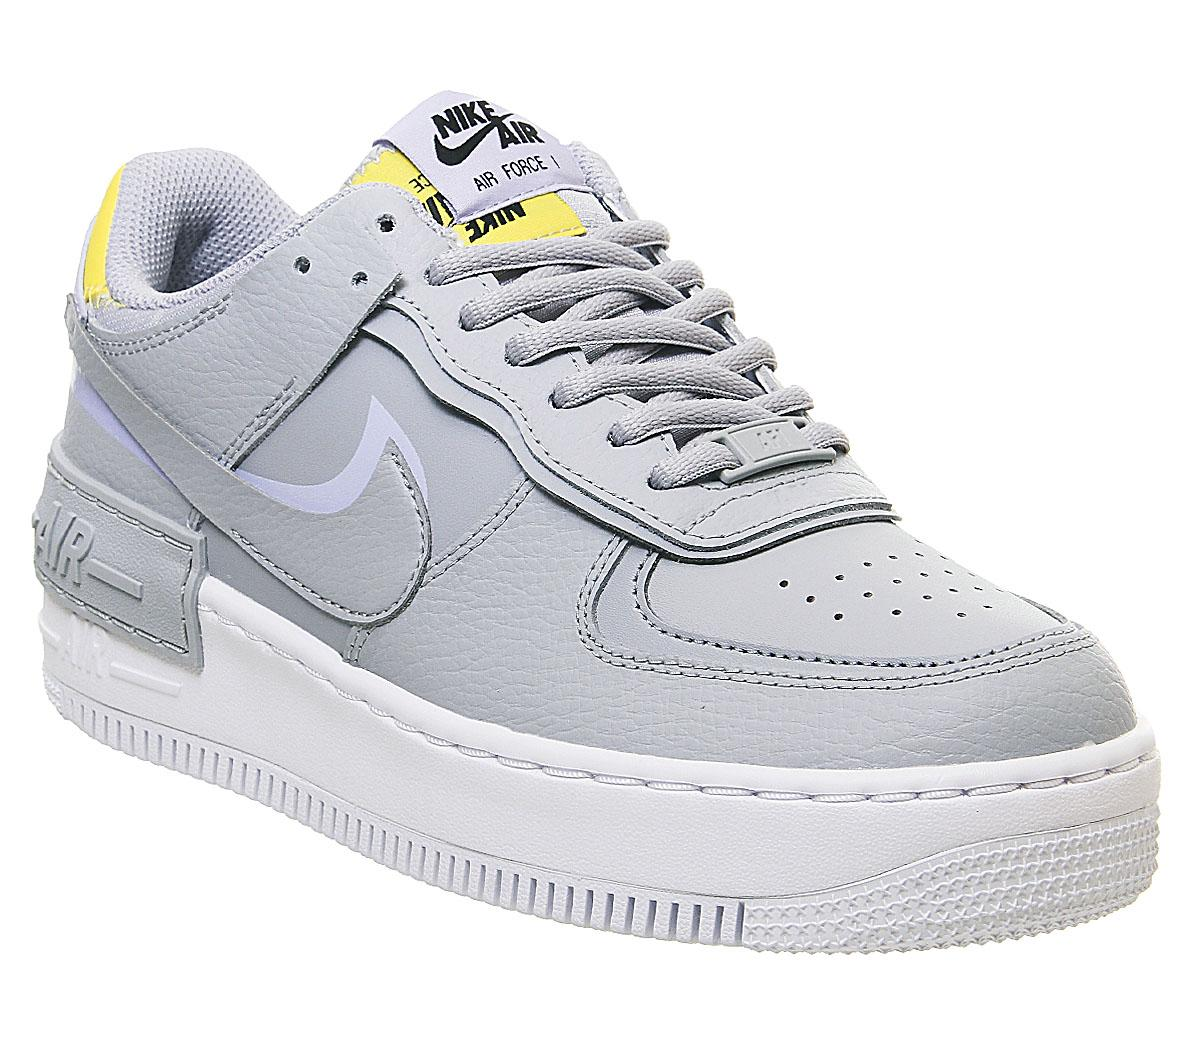 Nike Air Force 1 Shadow Trainers Wolf Grey Chrom Yellow Lavendar Mist His Trainers Check out our nike air force 1 selection for the very best in unique or custom, handmade pieces from our shoes shops. air force 1 shadow trainers